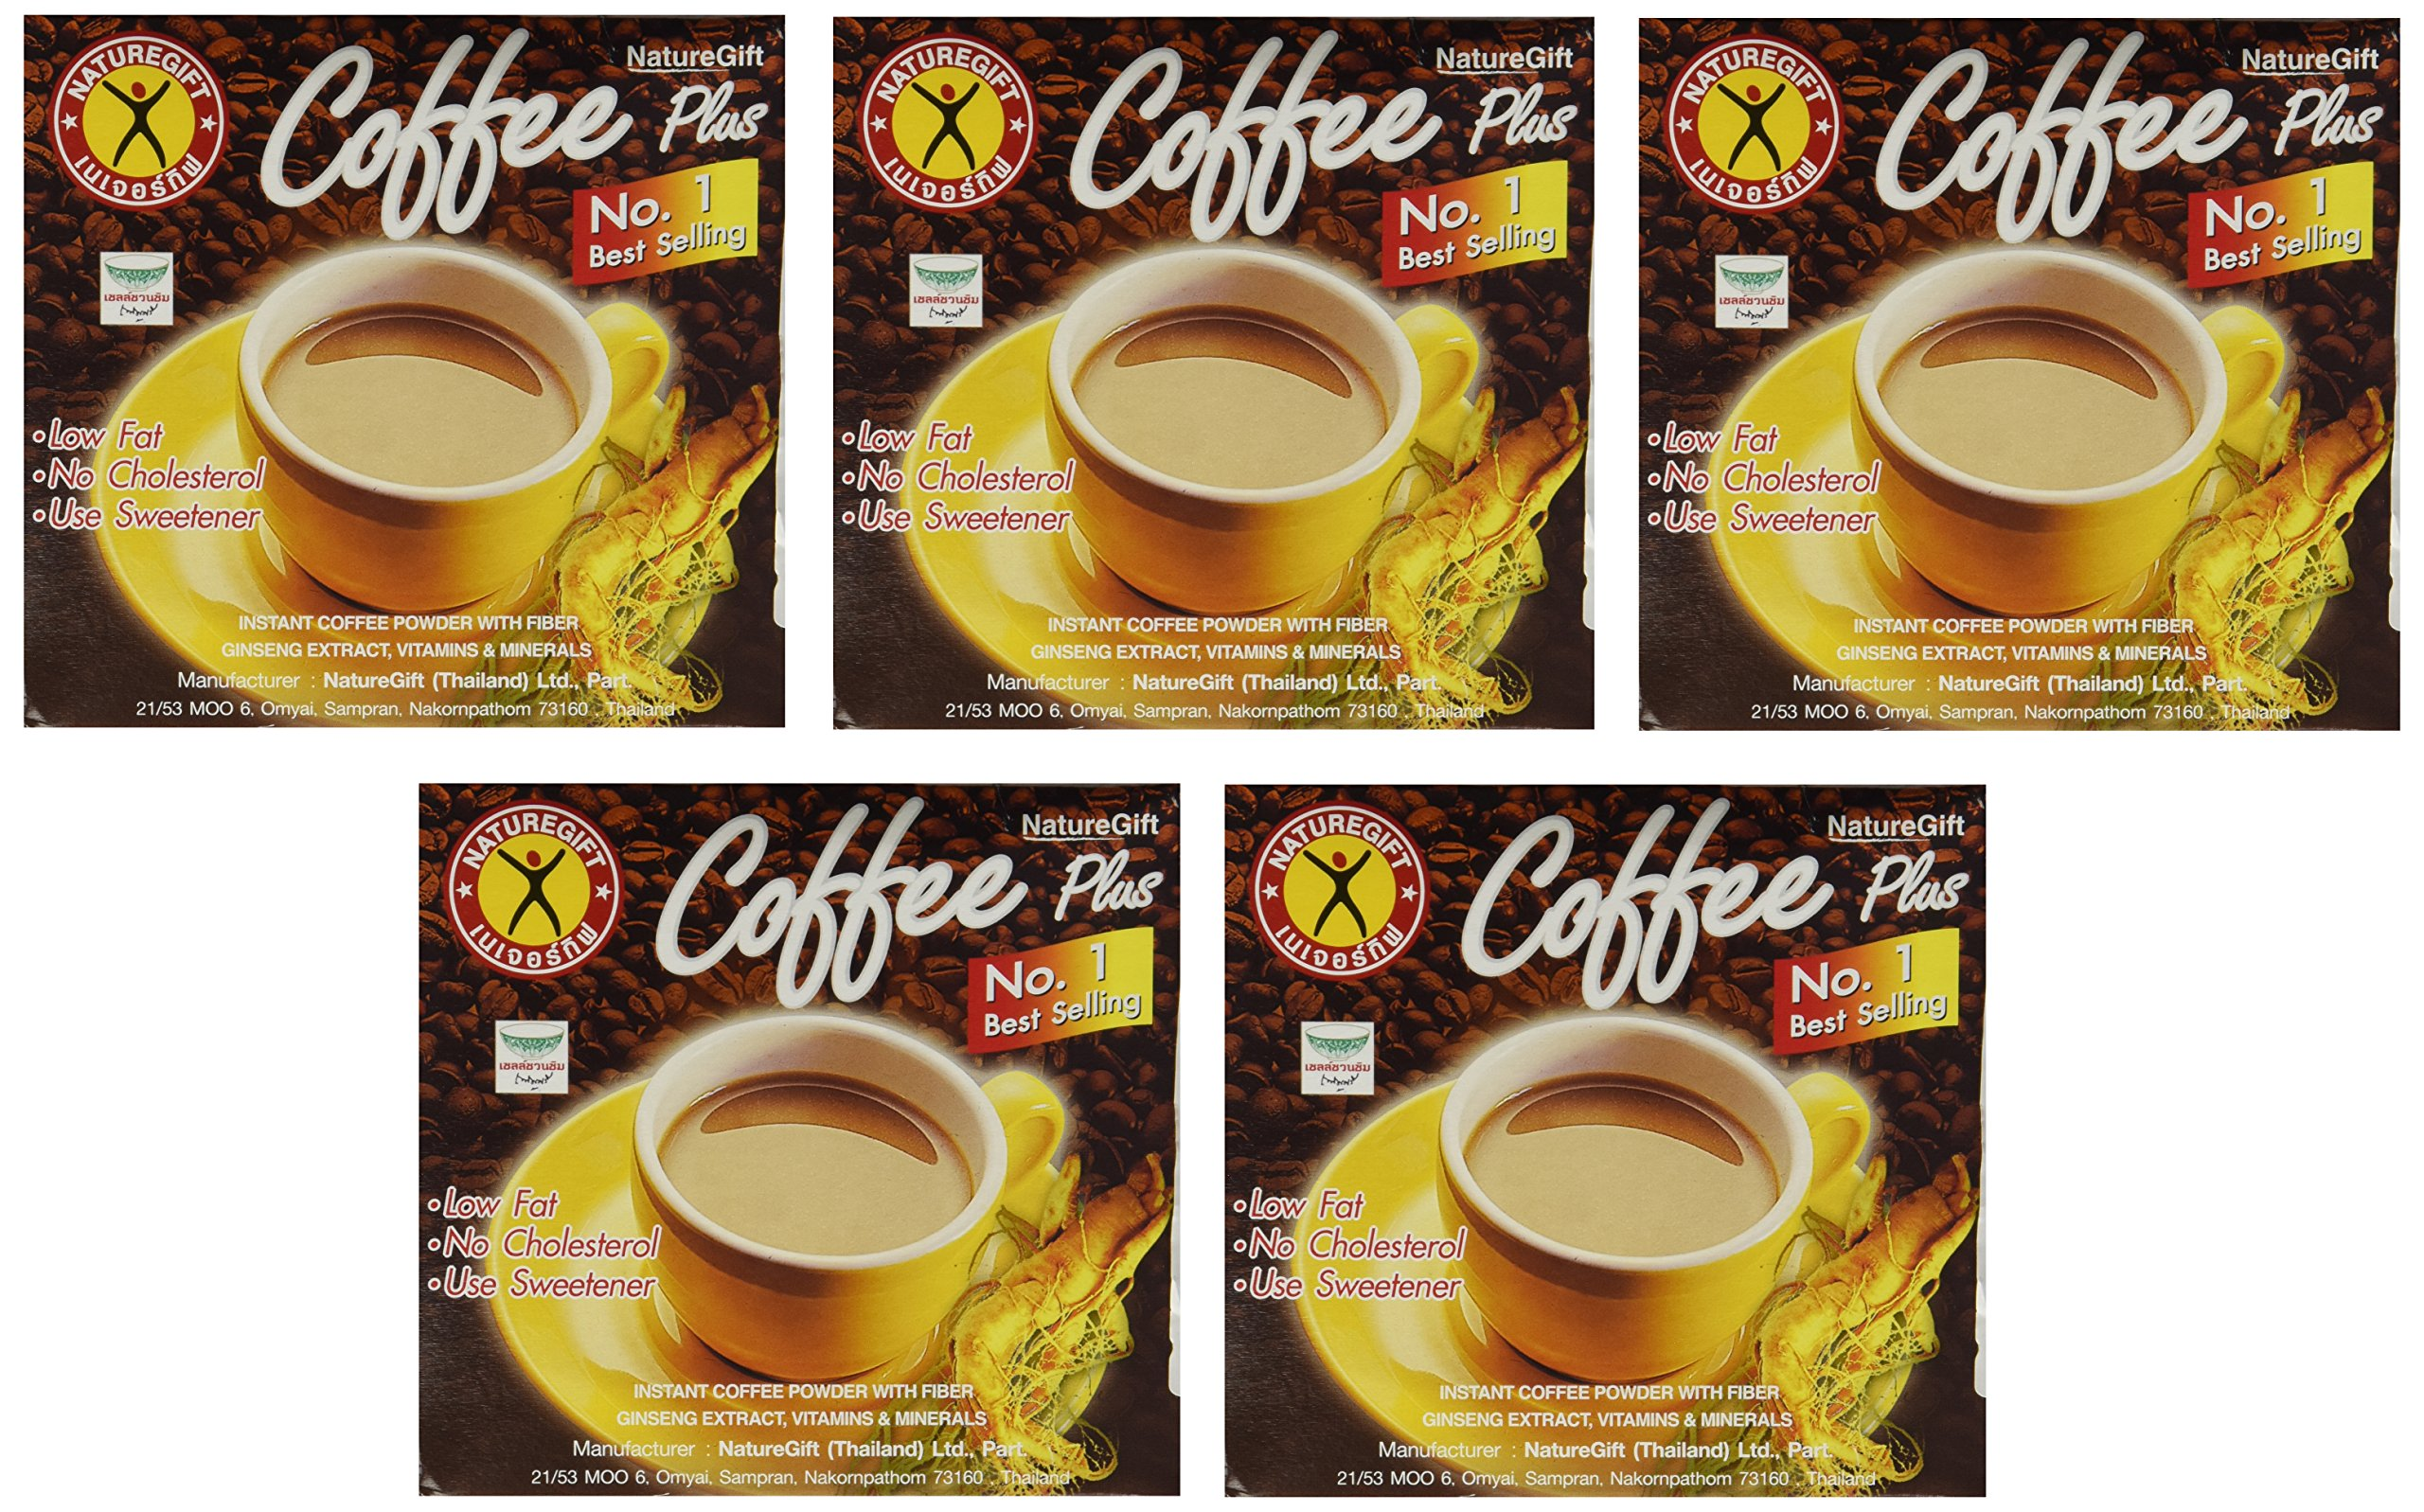 Naturegift- Weight Loss Diet Instant Coffee [Slimming] X 5 Boxes by Nature Is Gift